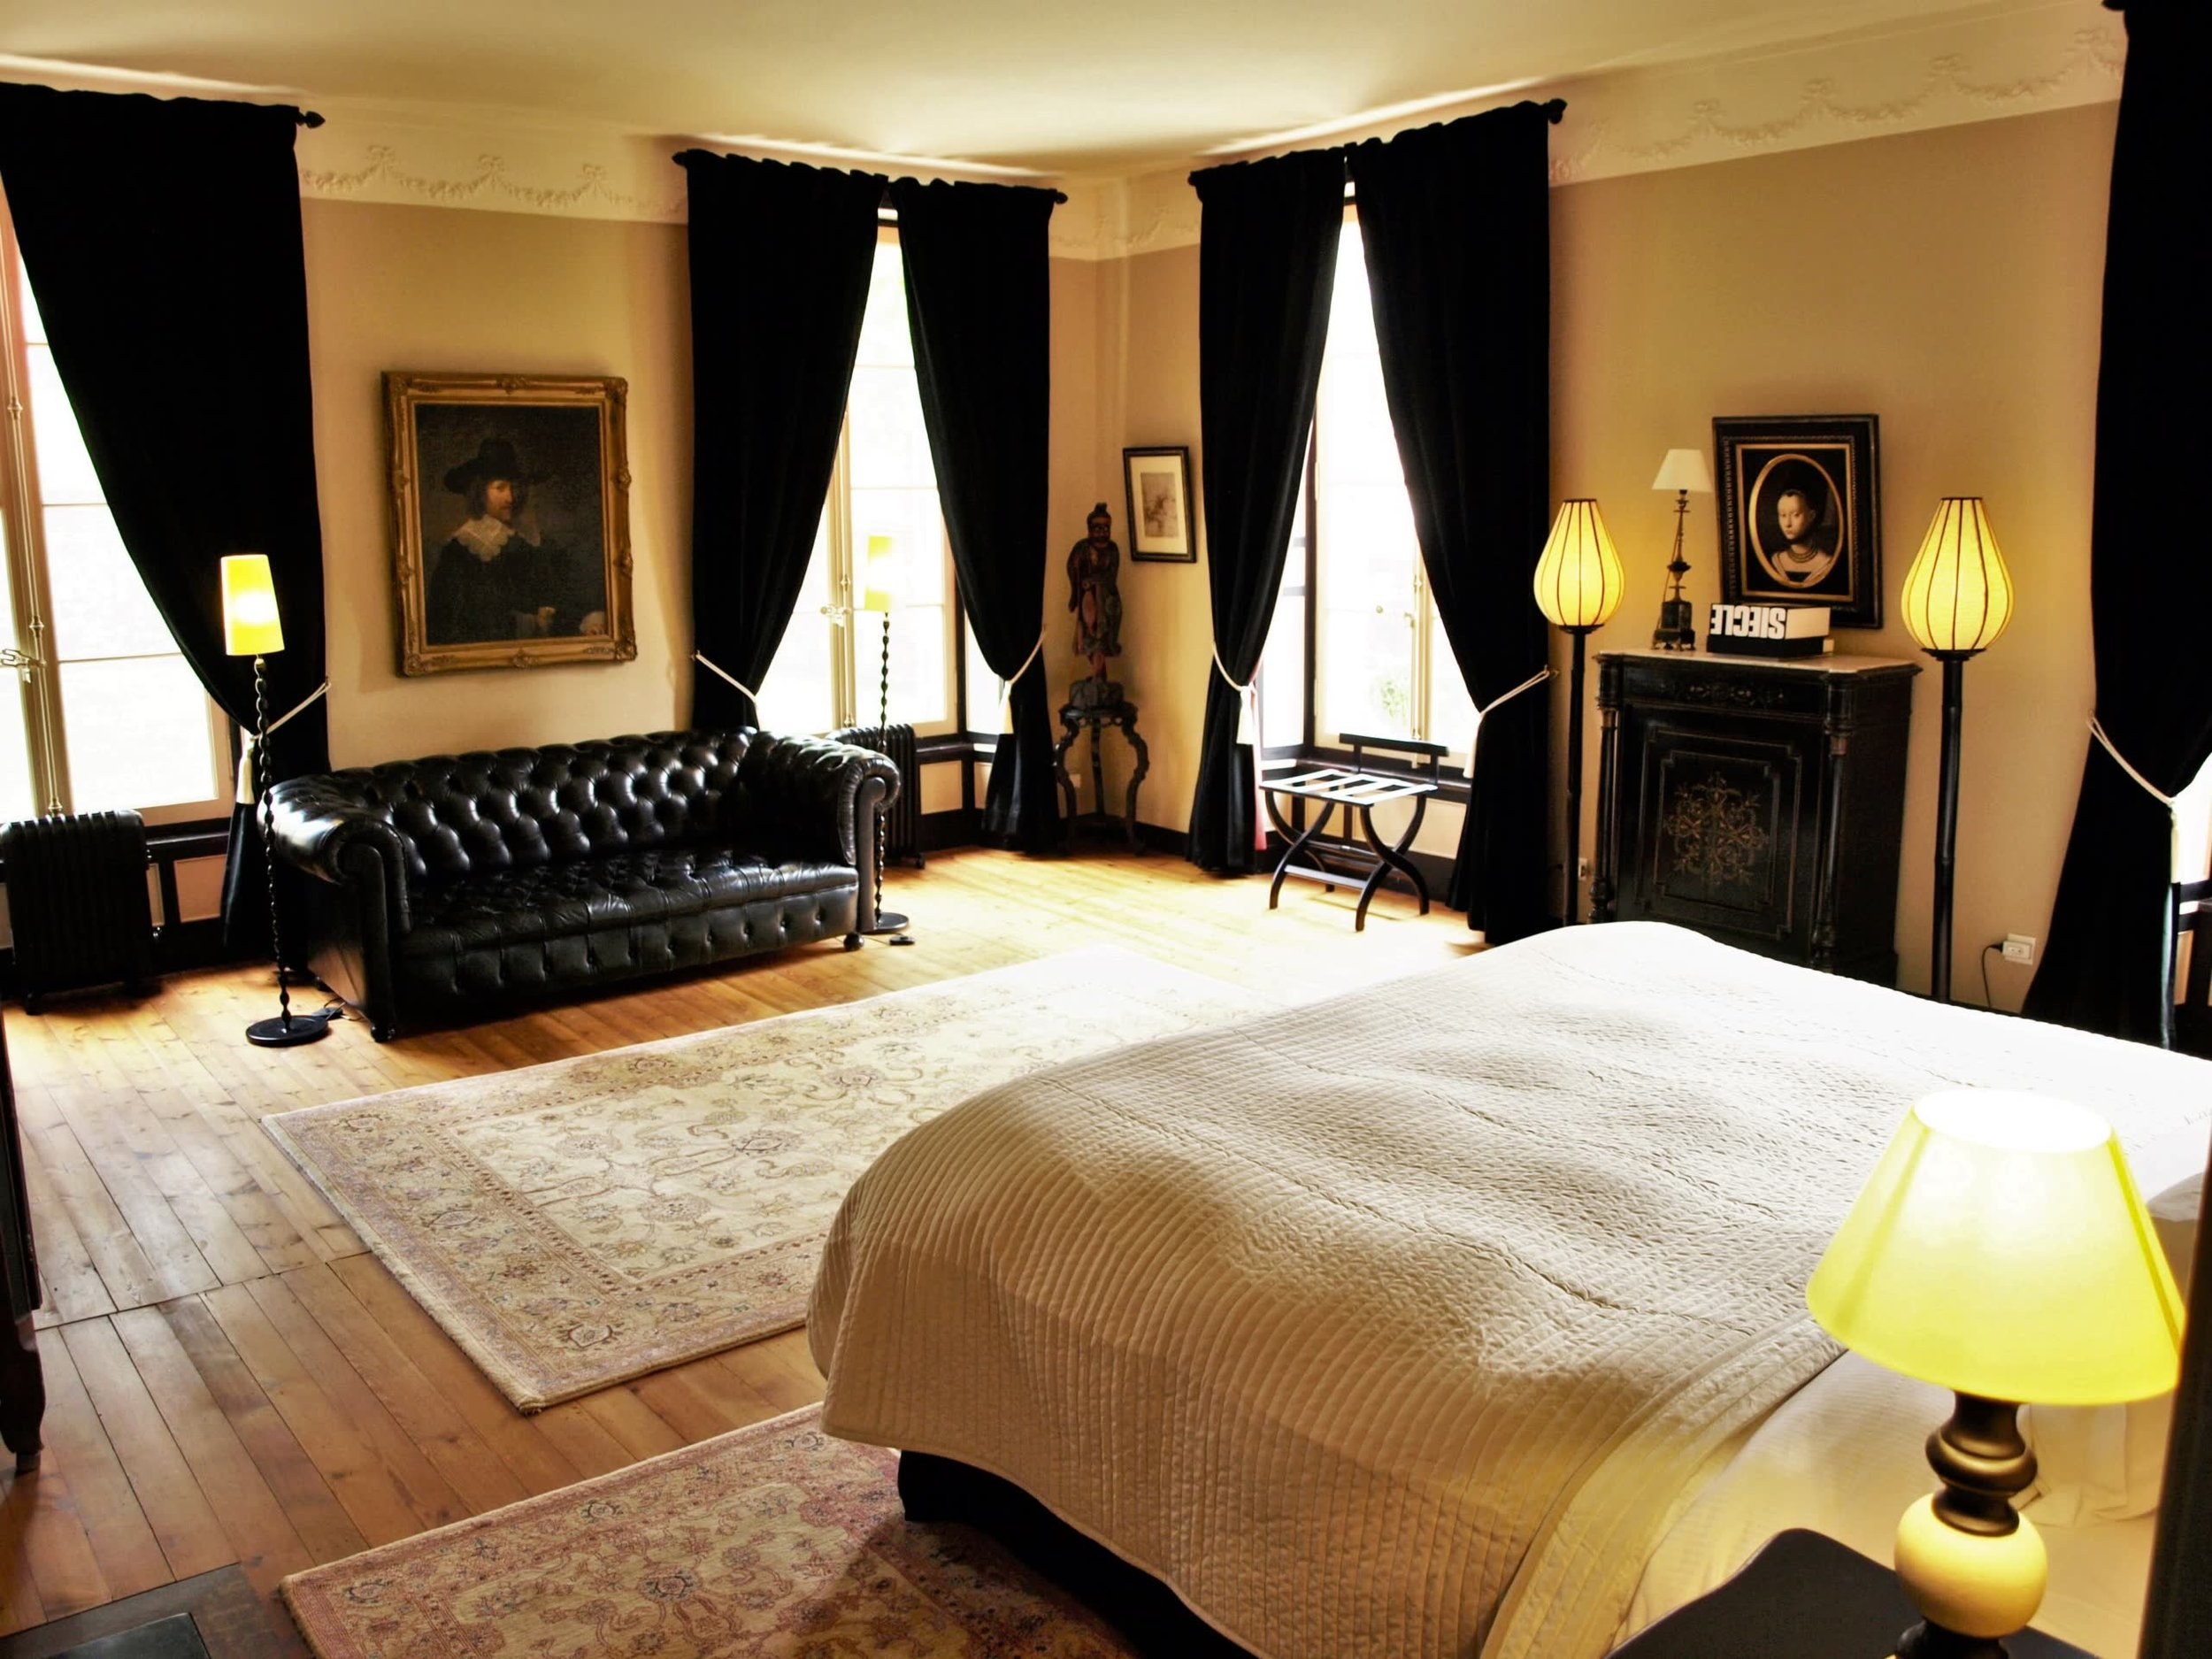 Chateau de la Pommeraye - charming boutique hotel chateau b&b spa normandy calvados bedroom Fragrances 2(2).jpg